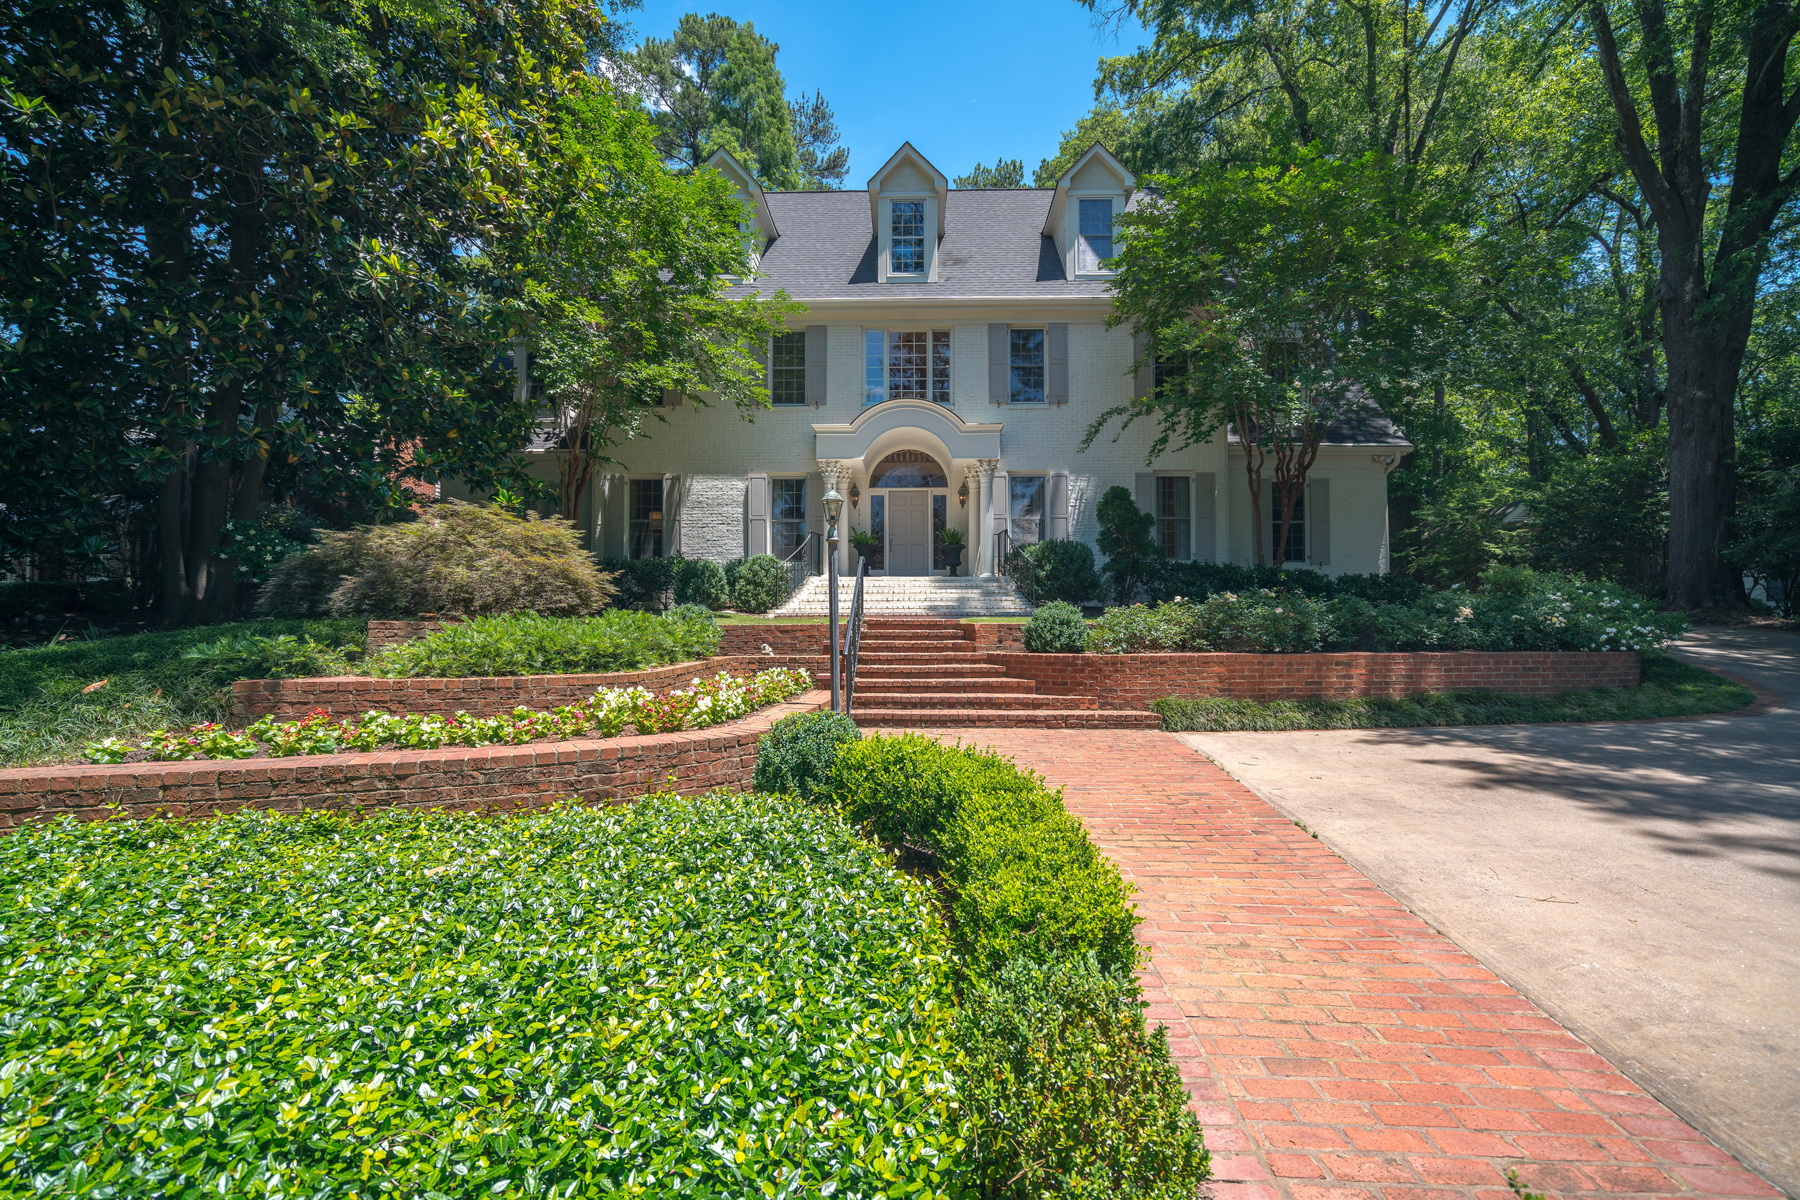 Single Family Home for Sale at Stunning Home In Historic Brookhaven 3914 E Brookhaven Drive NE Brookhaven, Atlanta, Georgia, 30319 United States